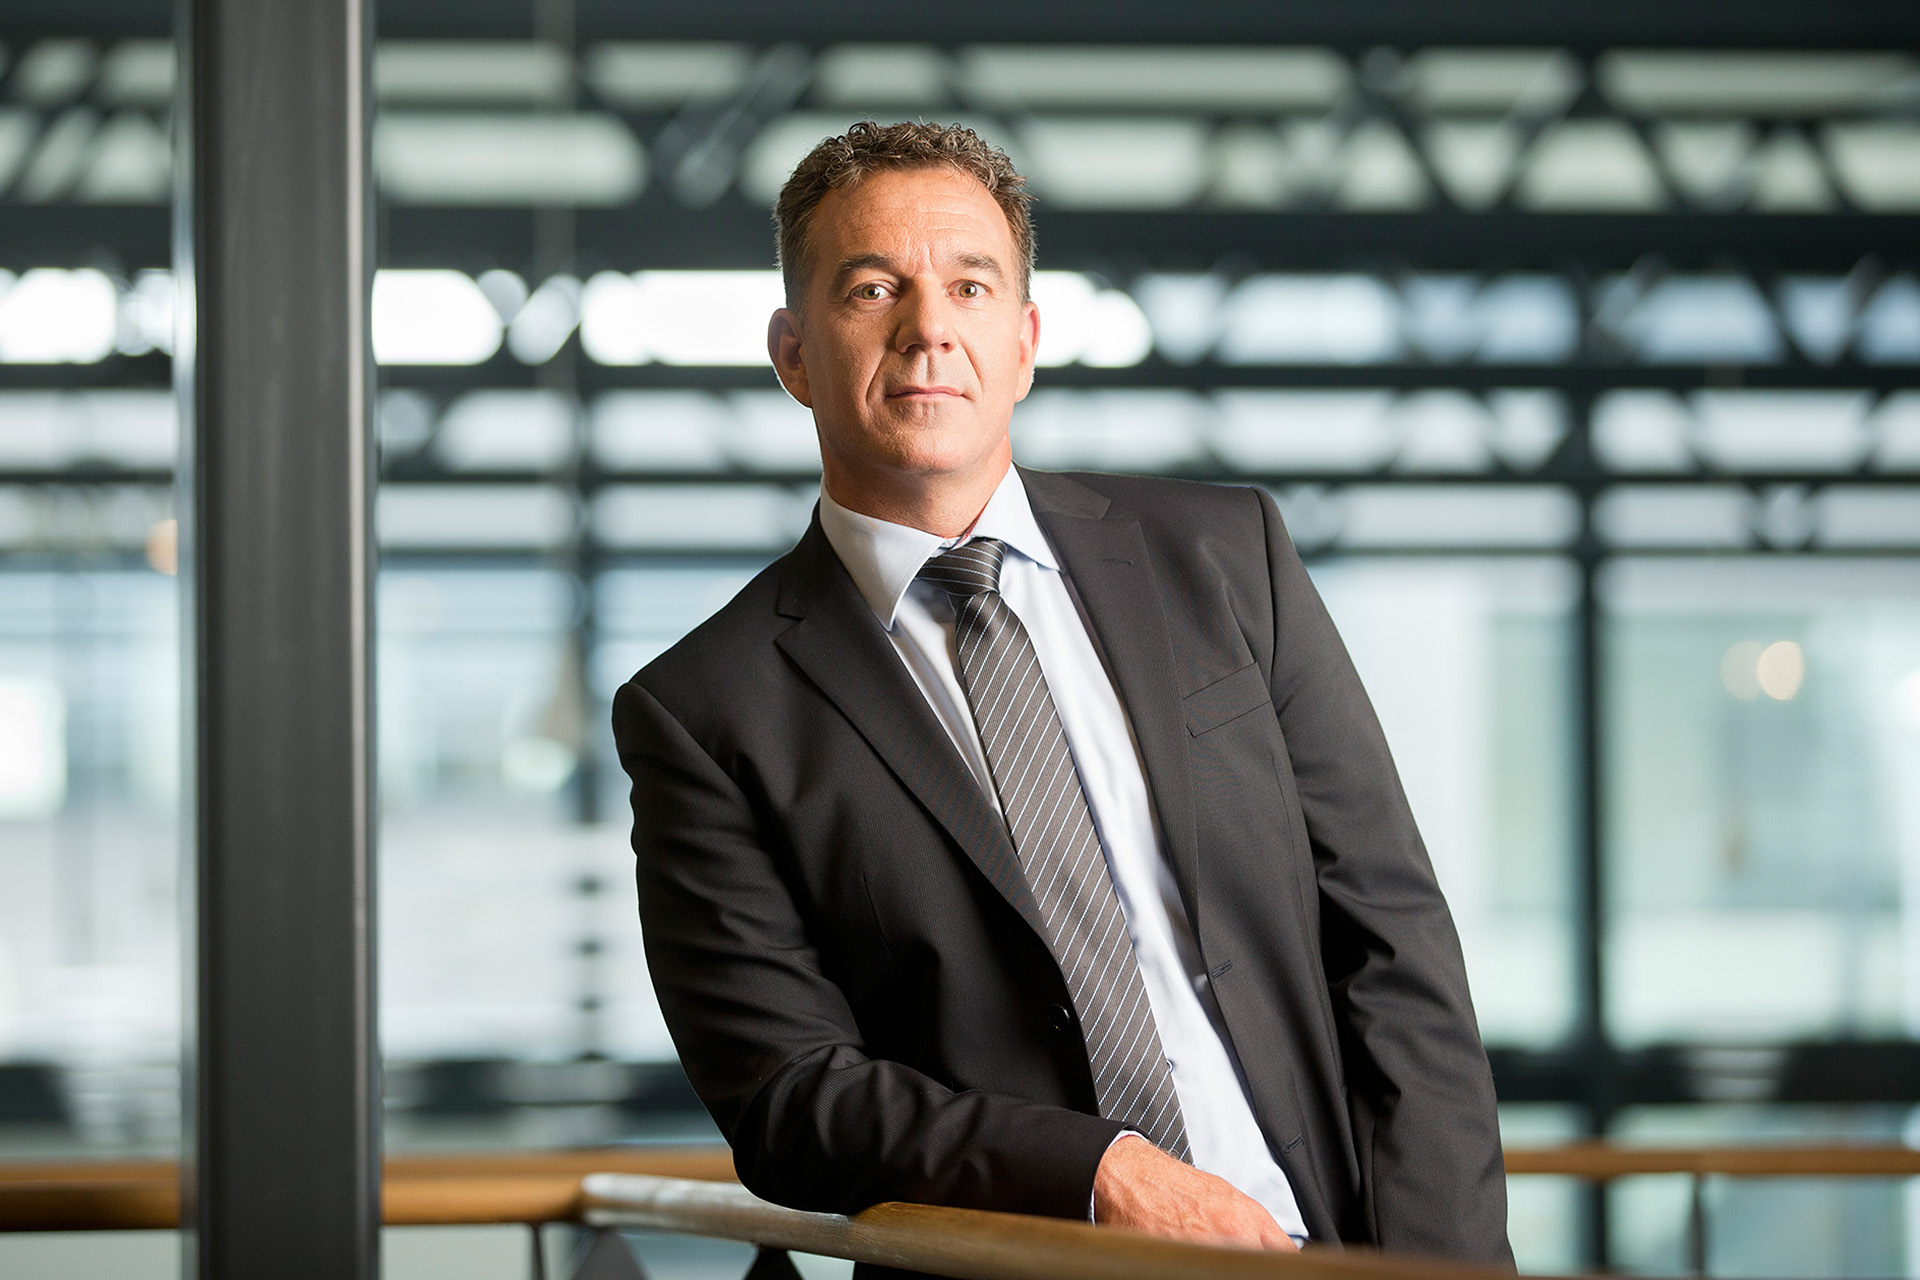 Michael Hannibal, CEO, Offshore Wind at Siemens Wind Power